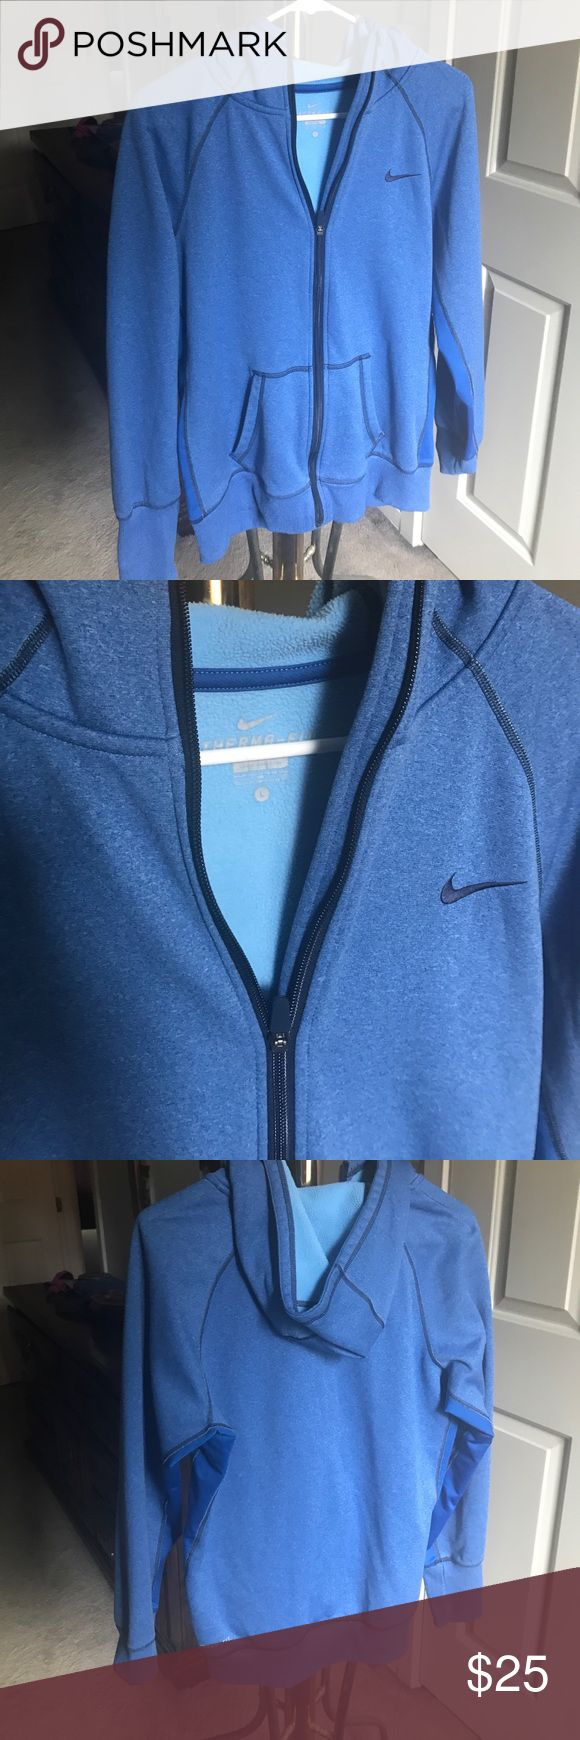 Nike DriFit Blue Zip up hoodie In great condition, blue therma fit Nike zip up hoodie, perfect for gym or fall days. Nike Jackets & Coats